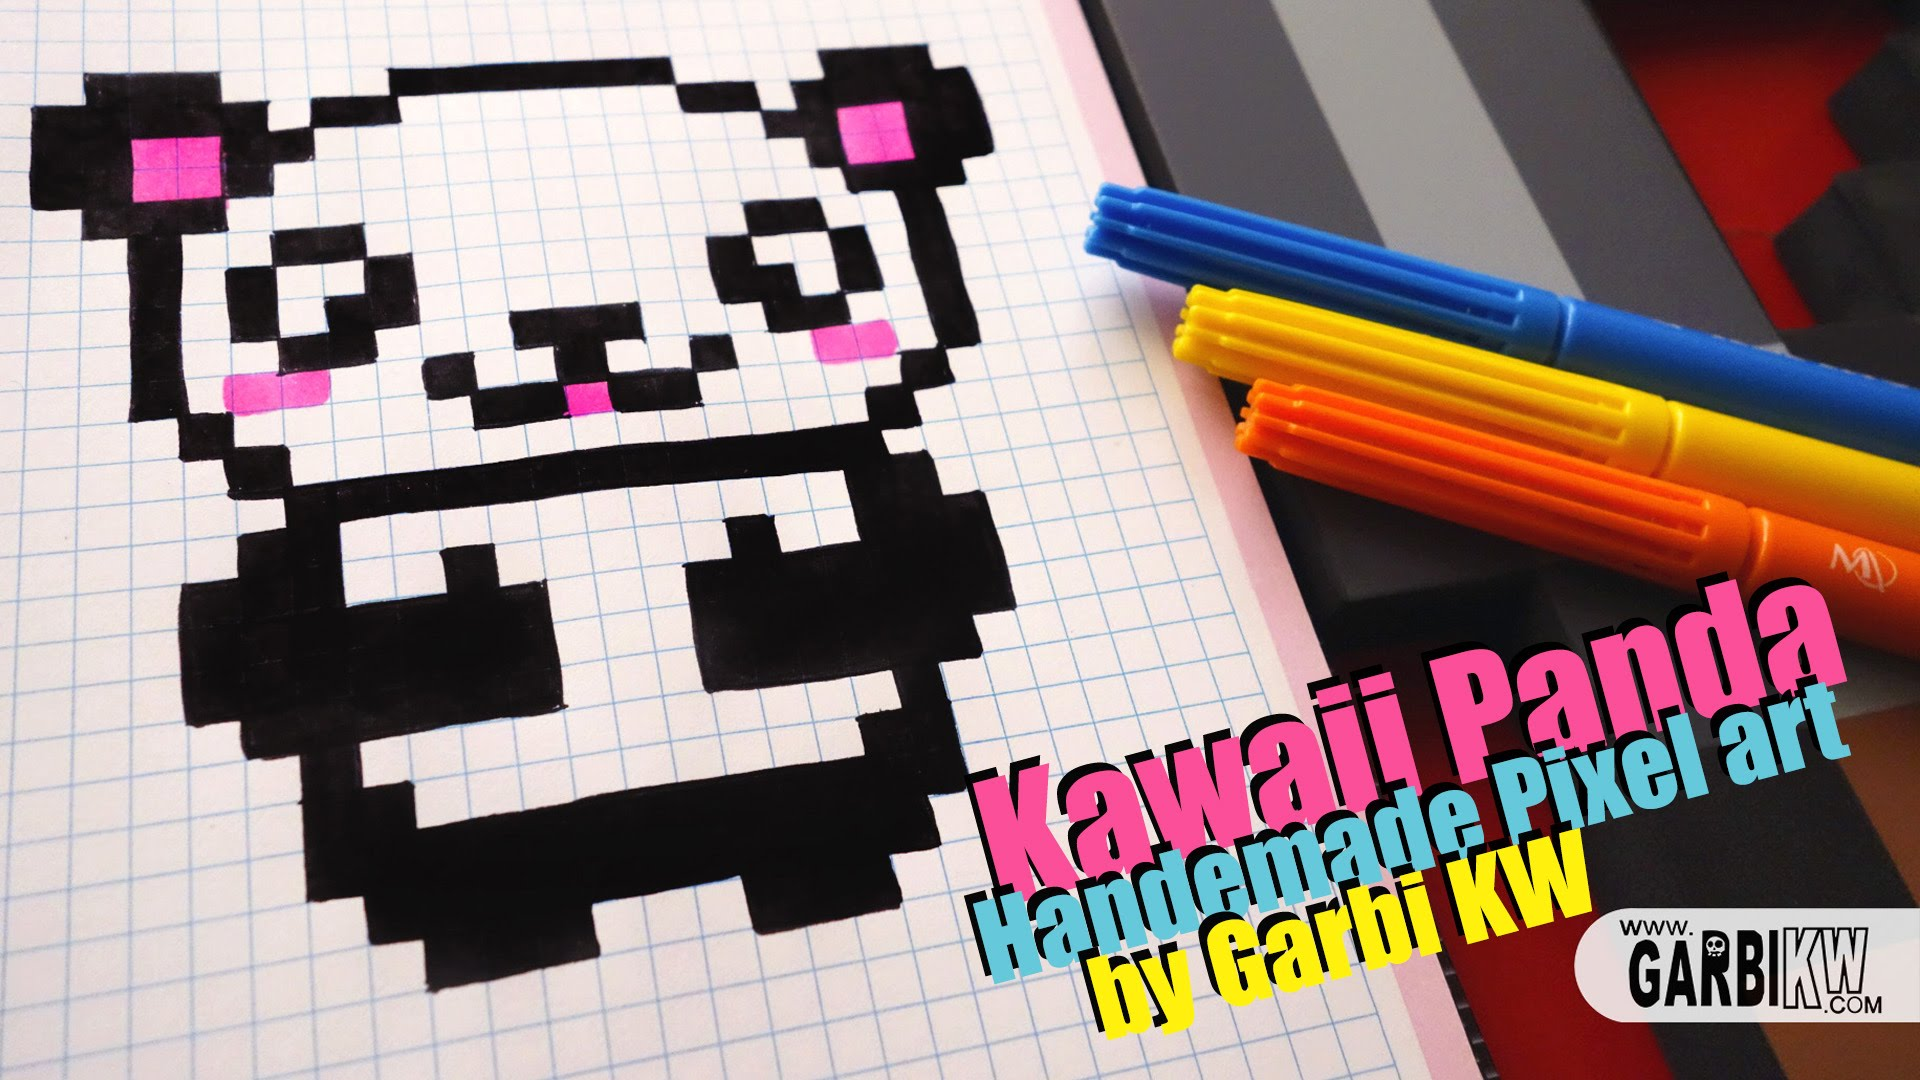 Drawn pixel art garbi kw YouTube Panda Art Garbi by